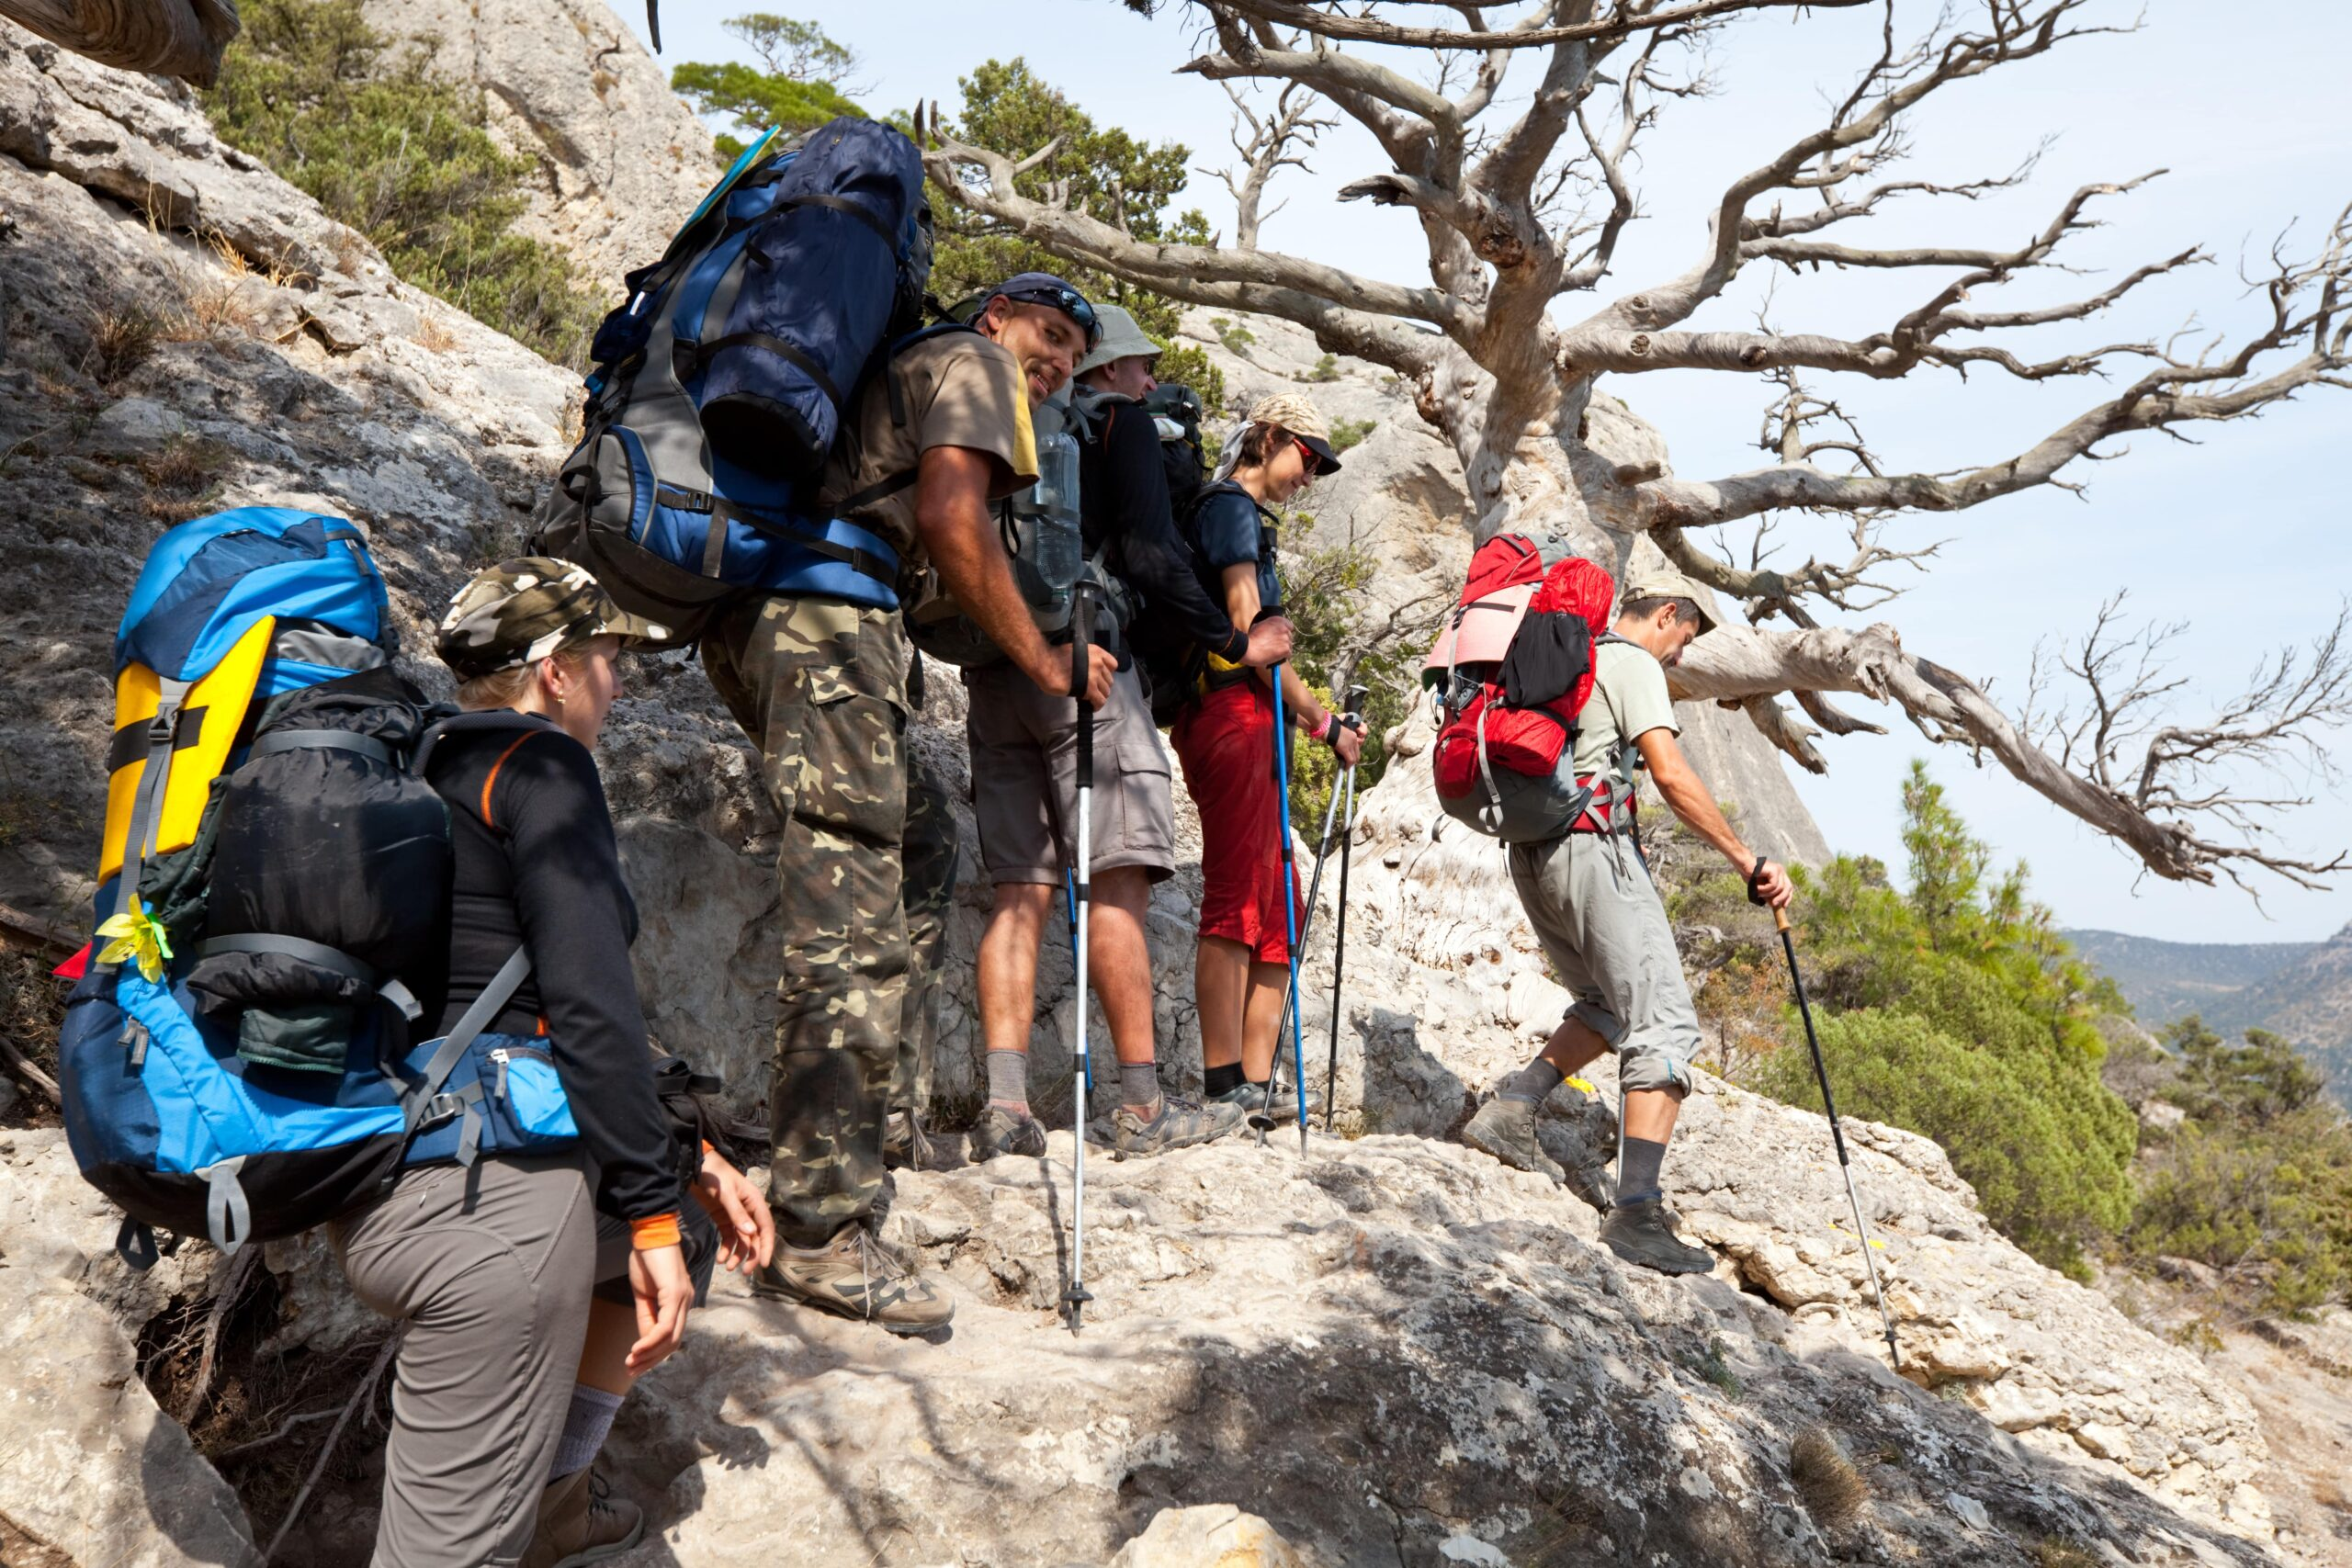 11 Unspoken Rules of Hiking Trail Manners